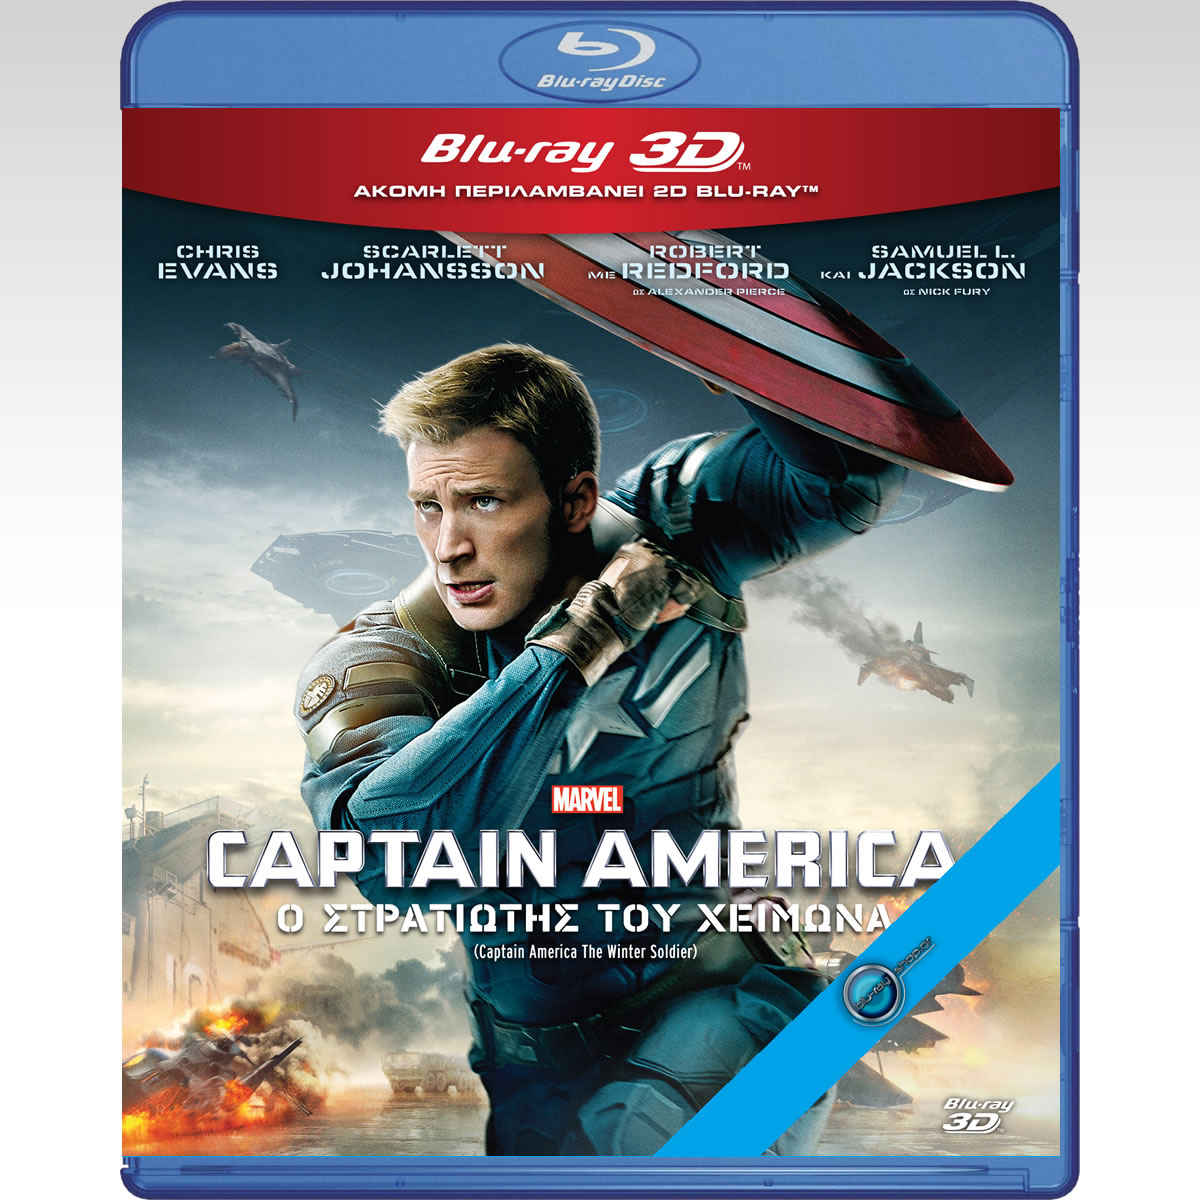 CAPTAIN AMERICA 2: THE WINTER SOLDIER 3D - CAPTAIN AMERICA 2: Ο ΣΤΡΑΤΙΩΤΗΣ ΤΟΥ ΧΕΙΜΩΝΑ 3D (BLU-RAY 3D + BLU-RAY)